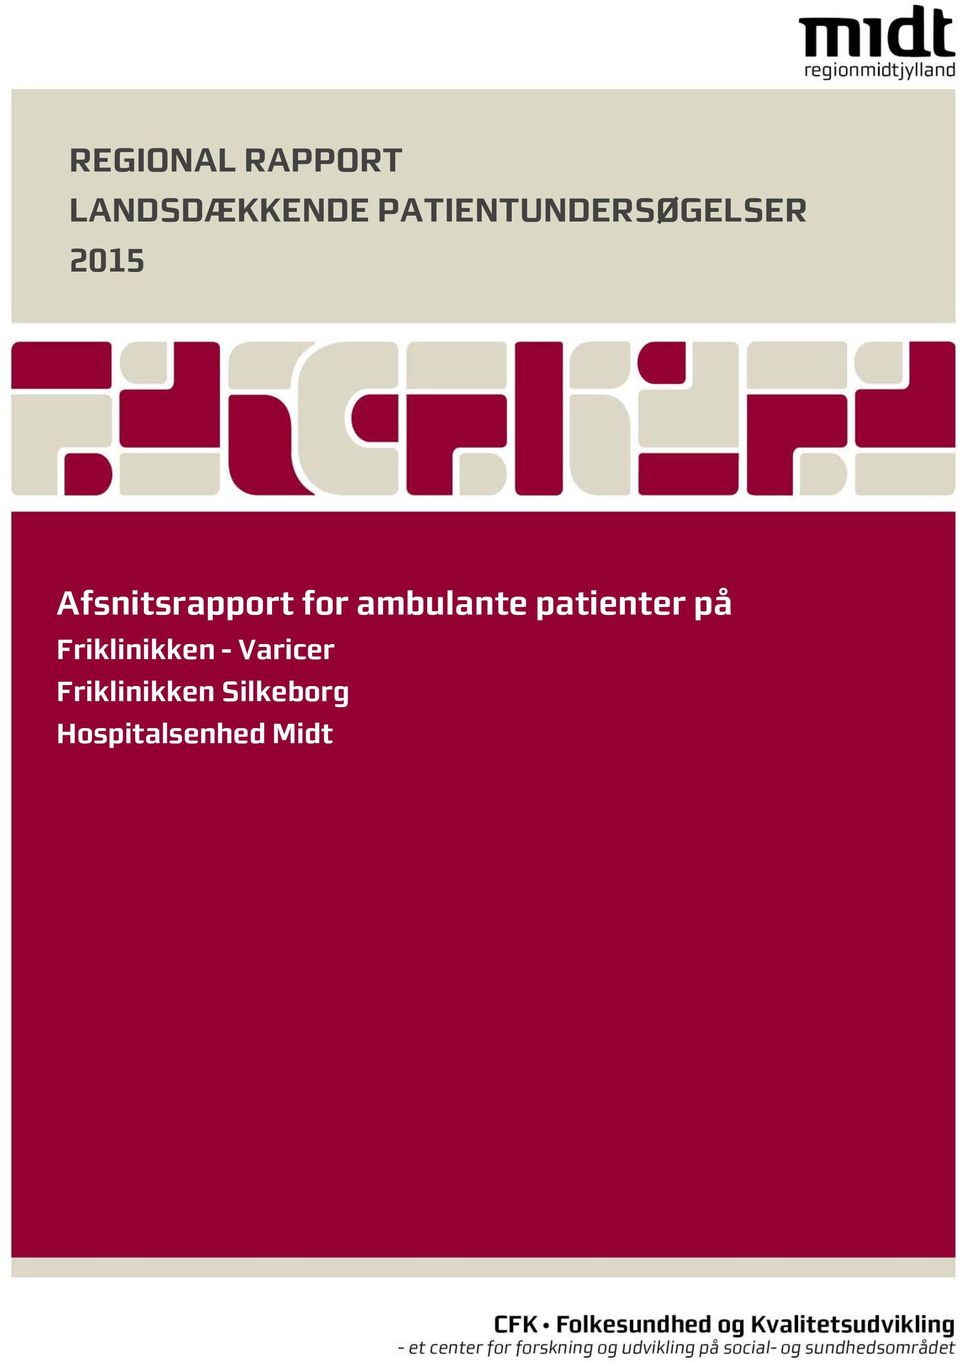 for ambulante patienter på Friklinikken